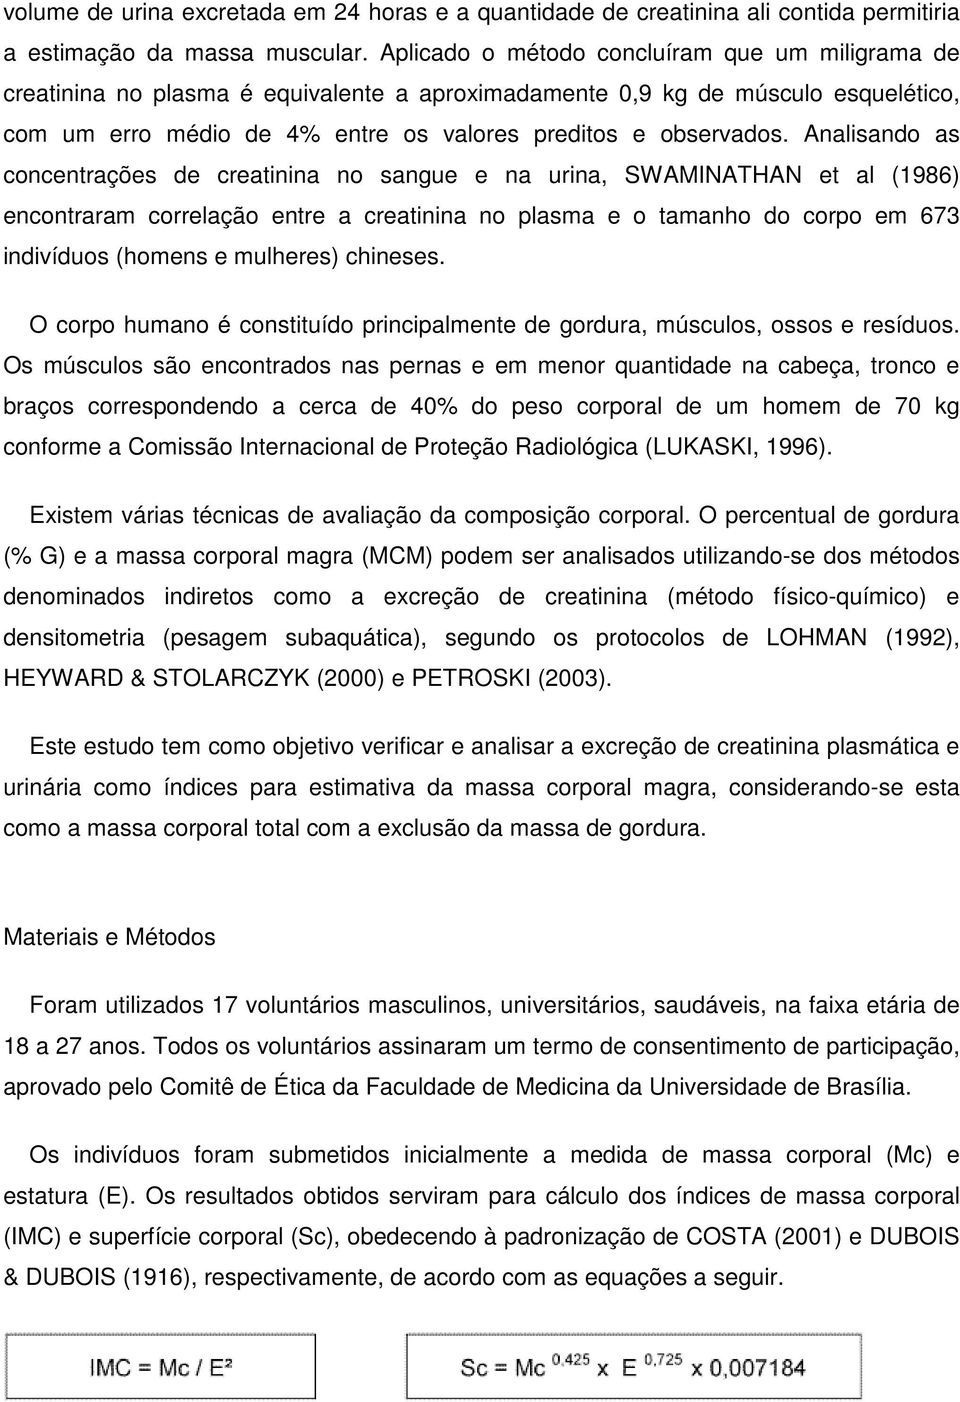 Analisando as concentrações de creatinina no sangue e na urina, SWAMINATHAN et al (1986) encontraram correlação entre a creatinina no plasma e o tamanho do corpo em 673 indivíduos (homens e mulheres)